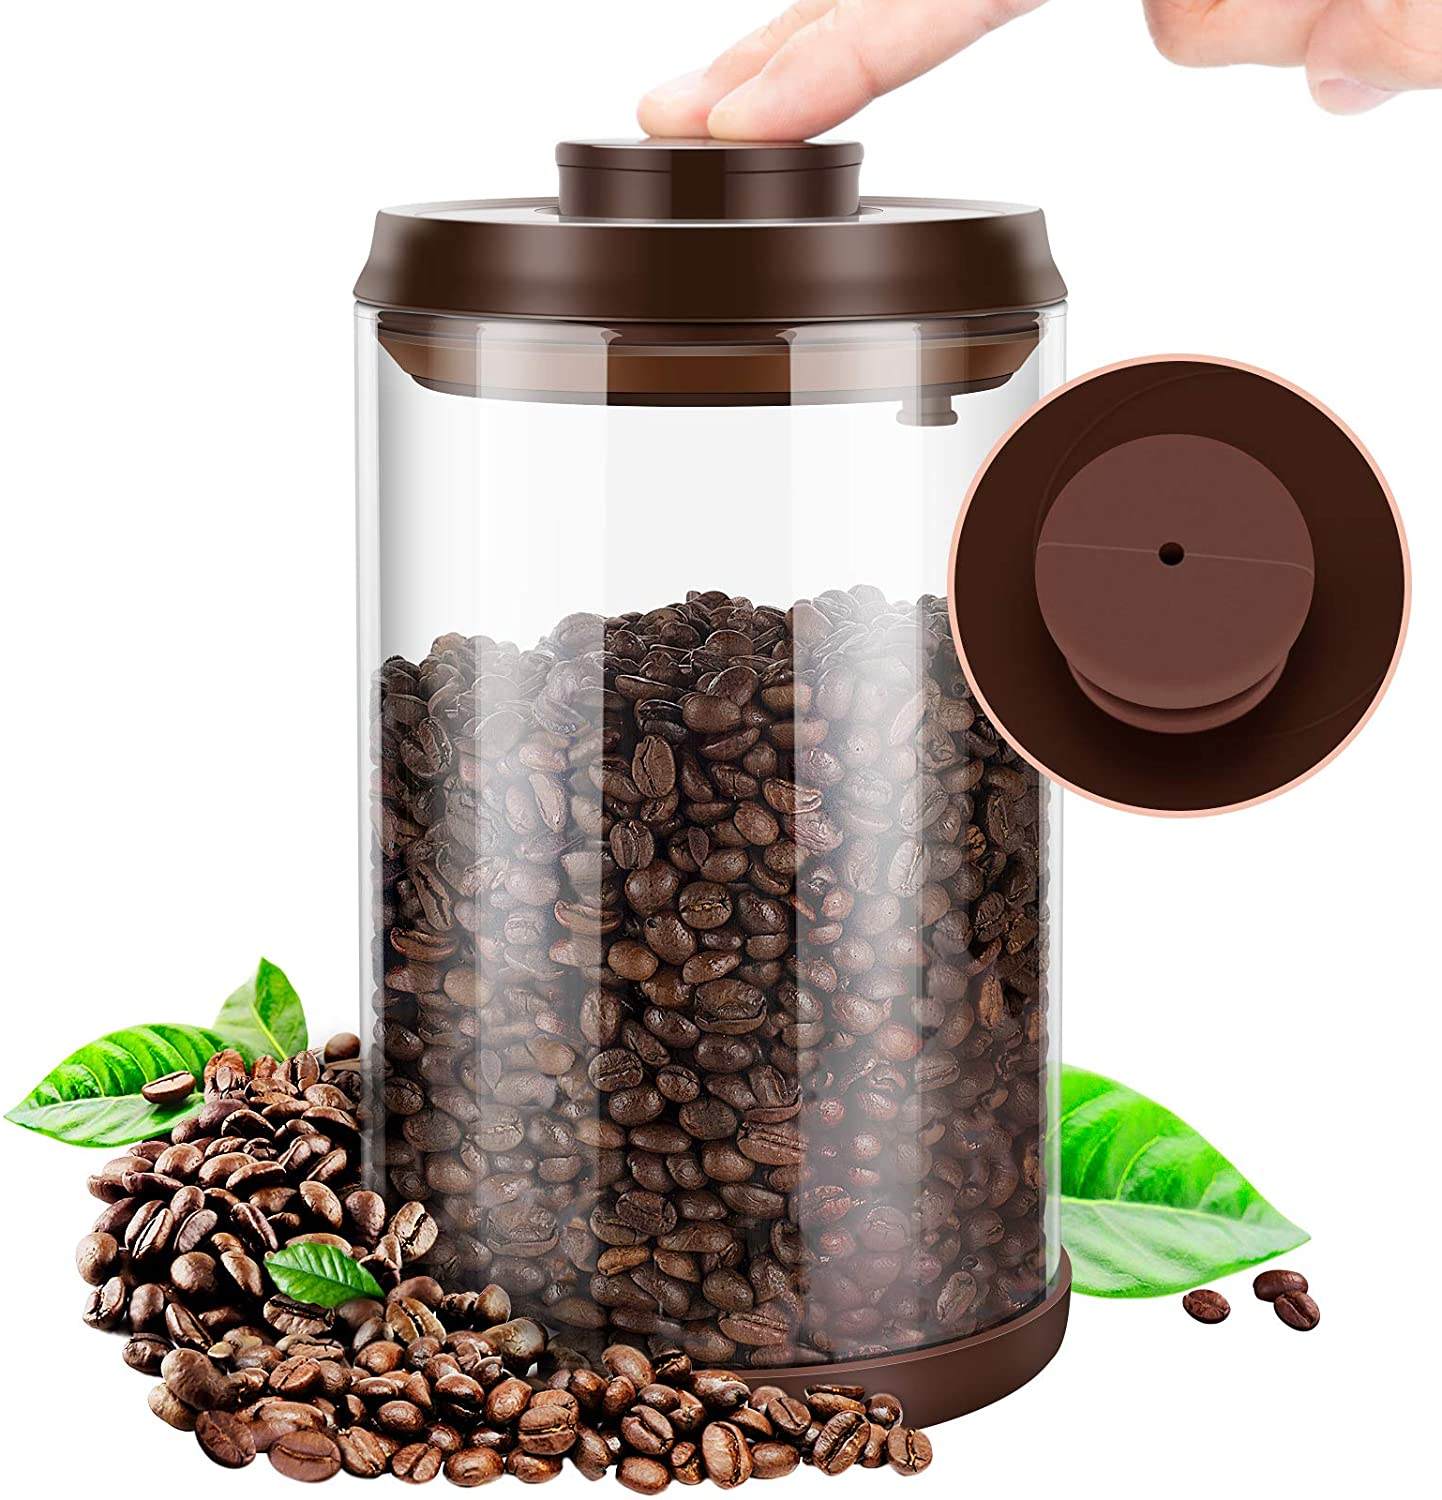 Coffee canister Fees free Airtight Storage Container Gl Beans Regular dealer Large